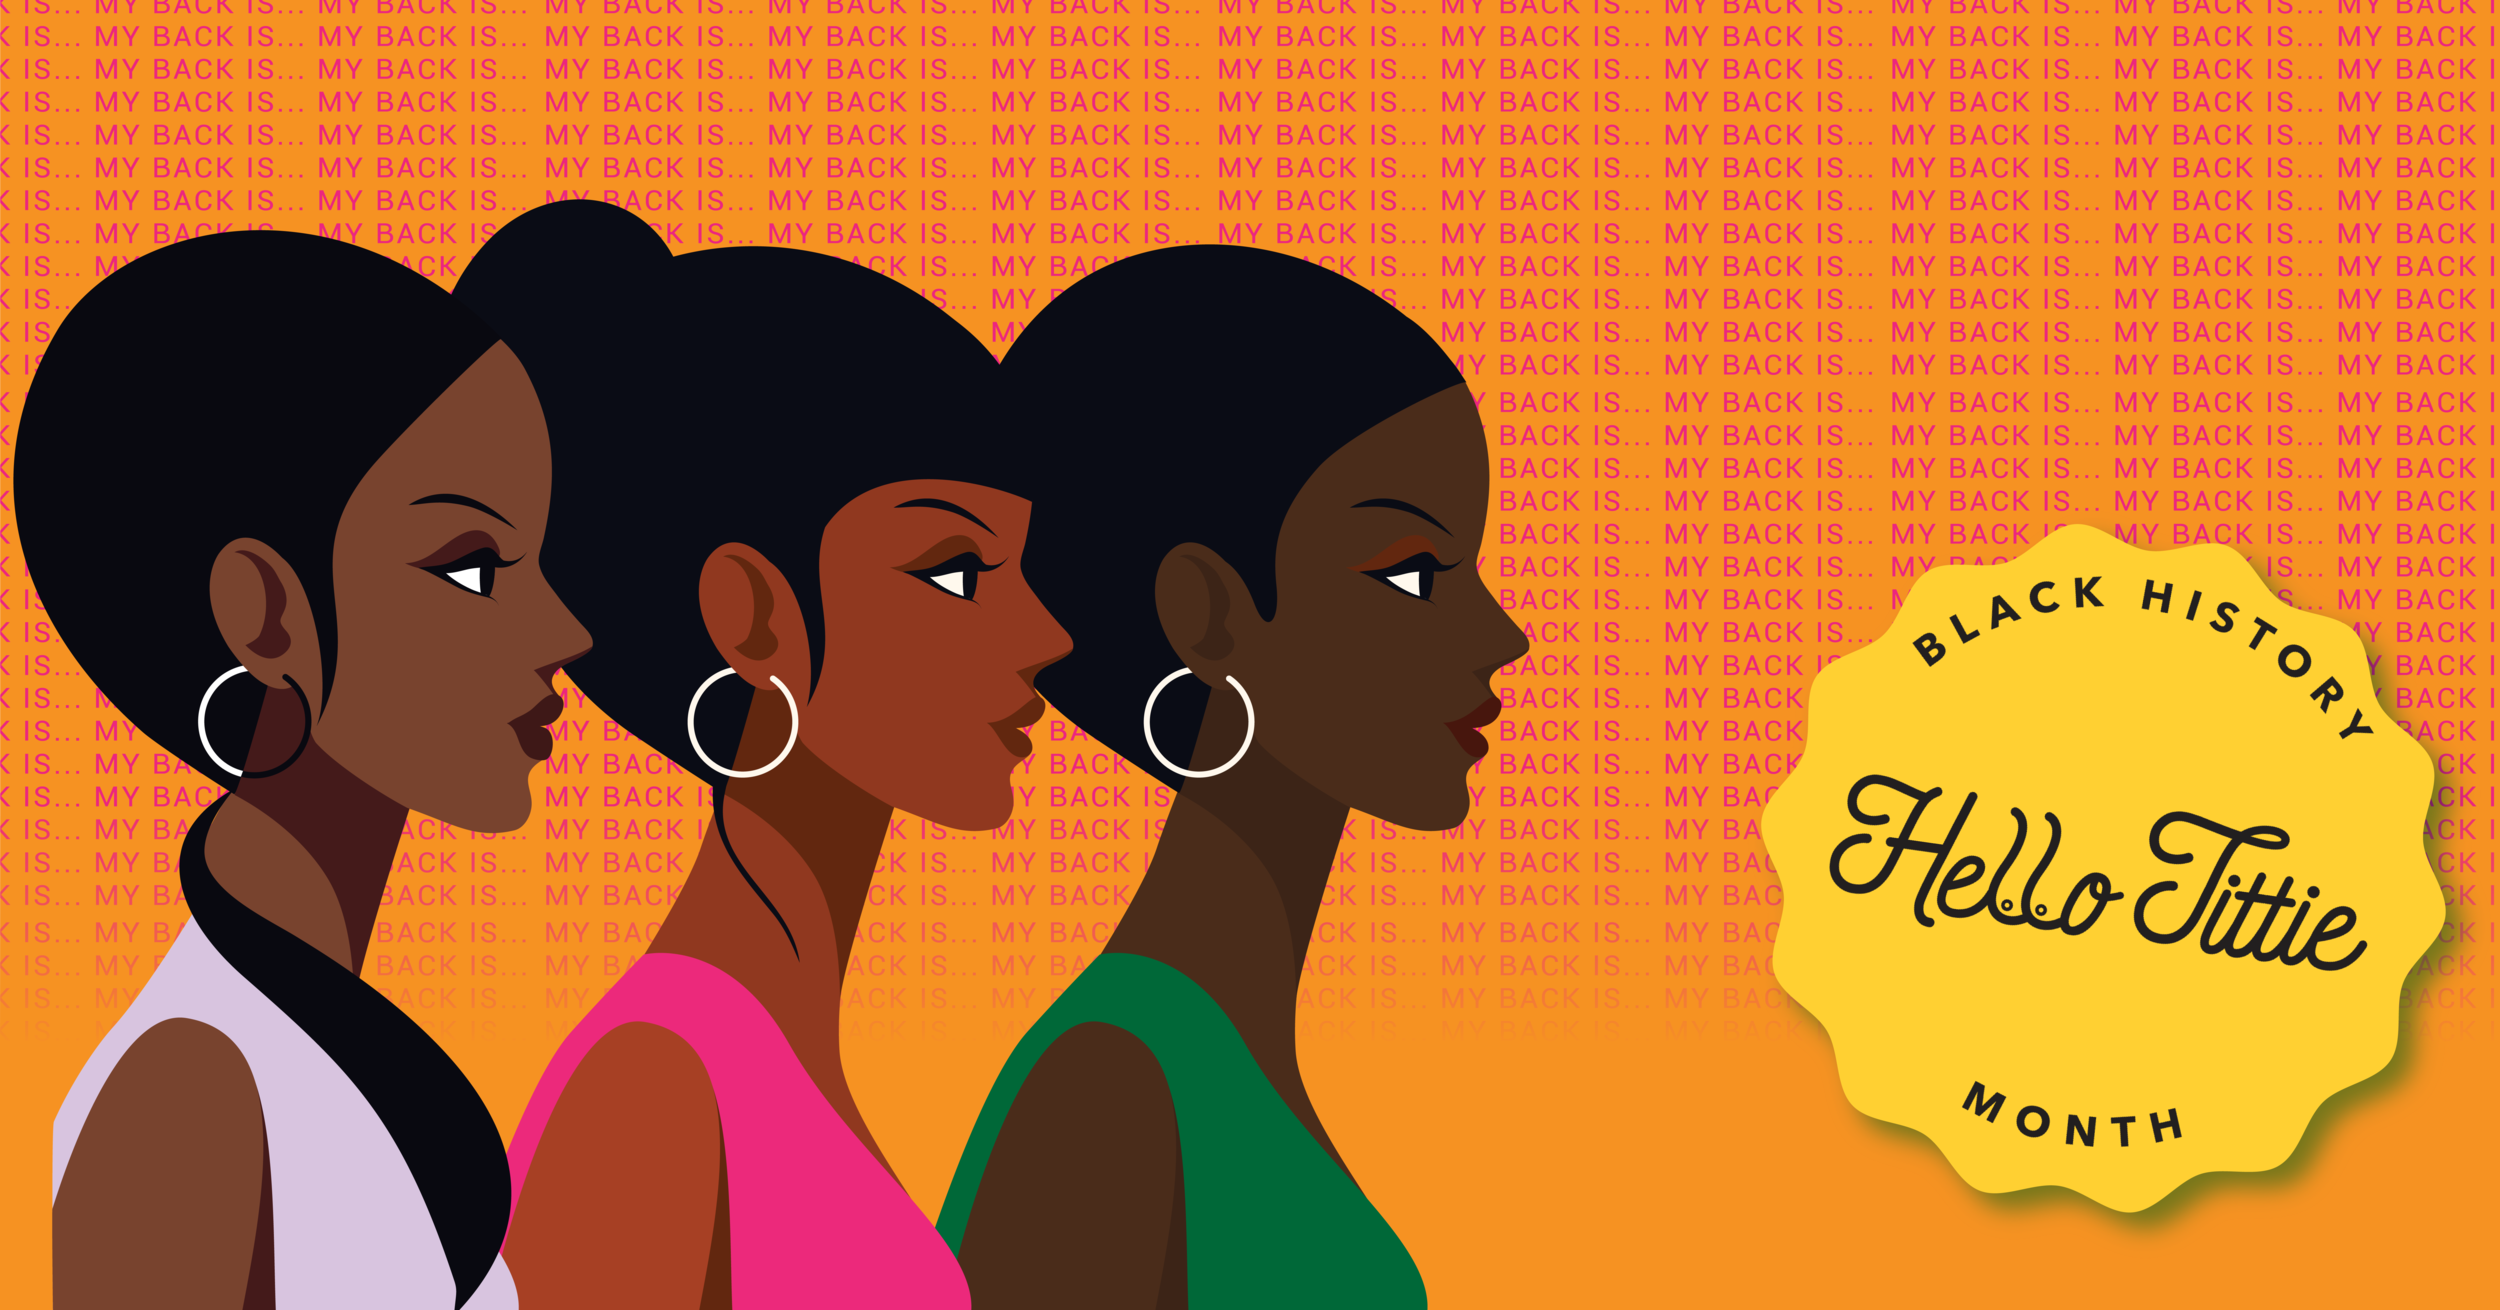 Remarkable Women of Color - Hellotittie was lucky enough to interview a group of Remarkable Women of Color for Black History Month 2019!Click on the title or 'Learn More' link to view the interviews.